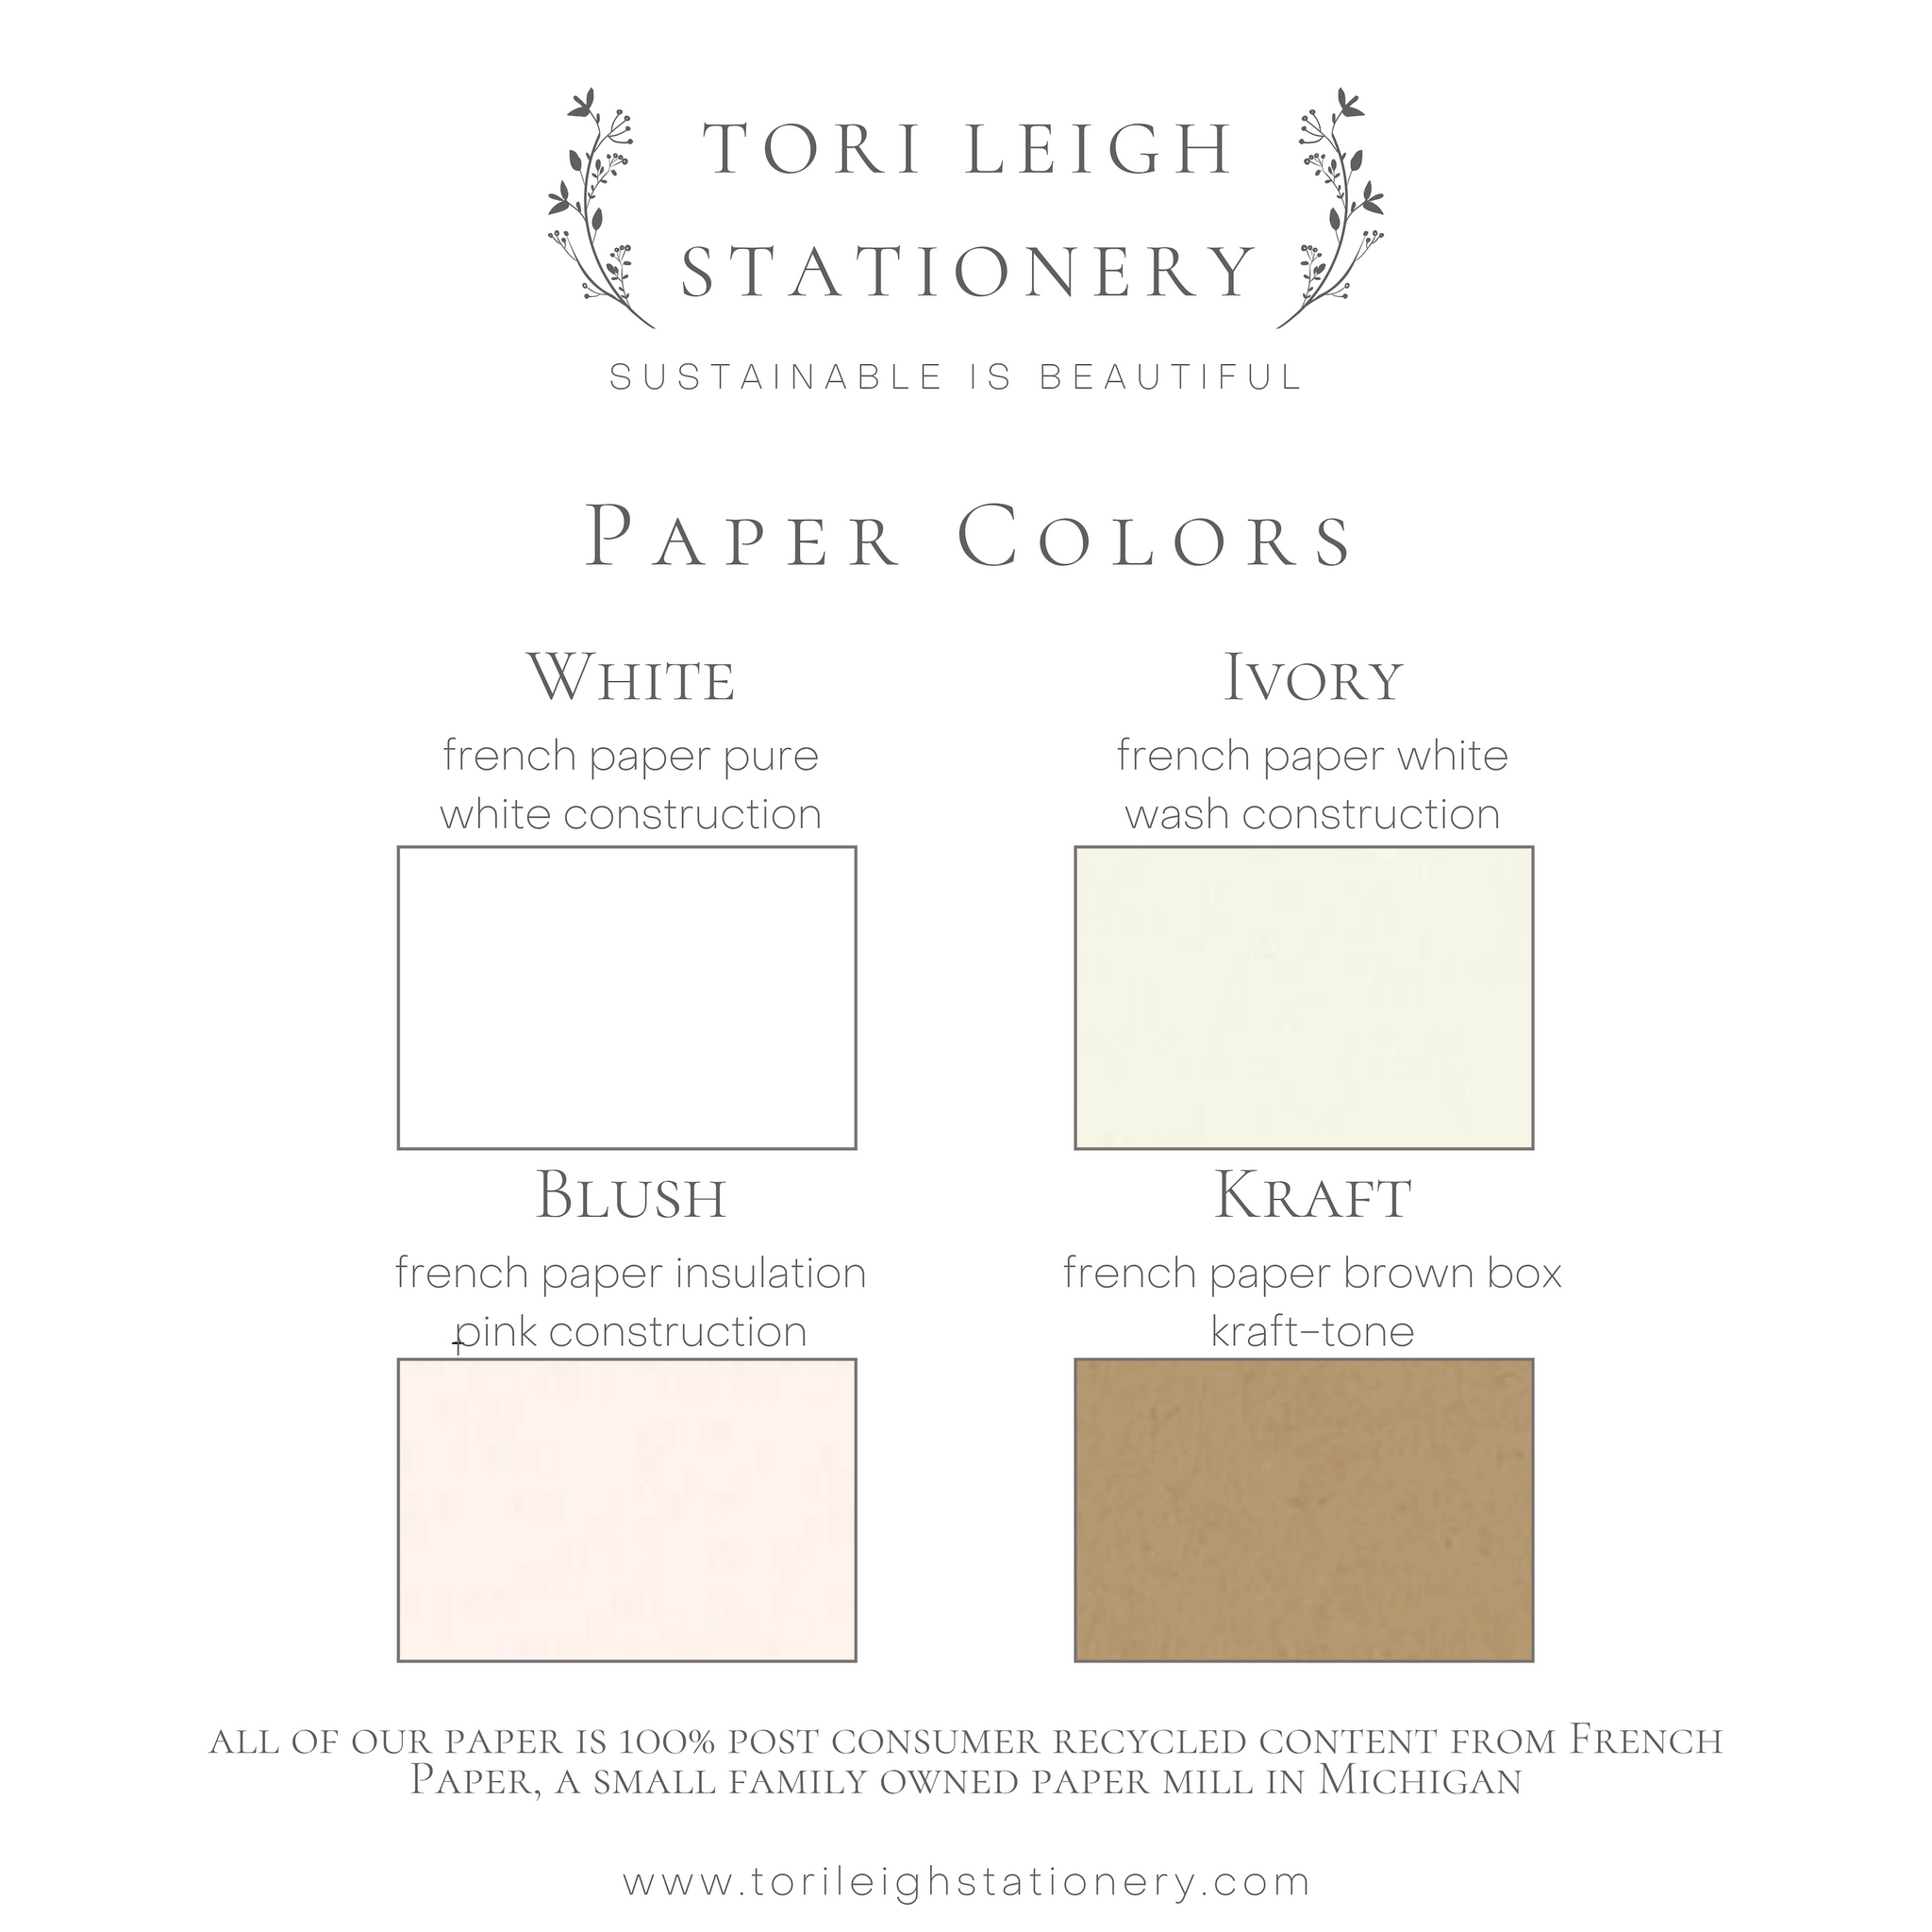 Stationery paper color chart. Paper colors include white, ivory, blush, and kraft. All paper is 100% post consumer content